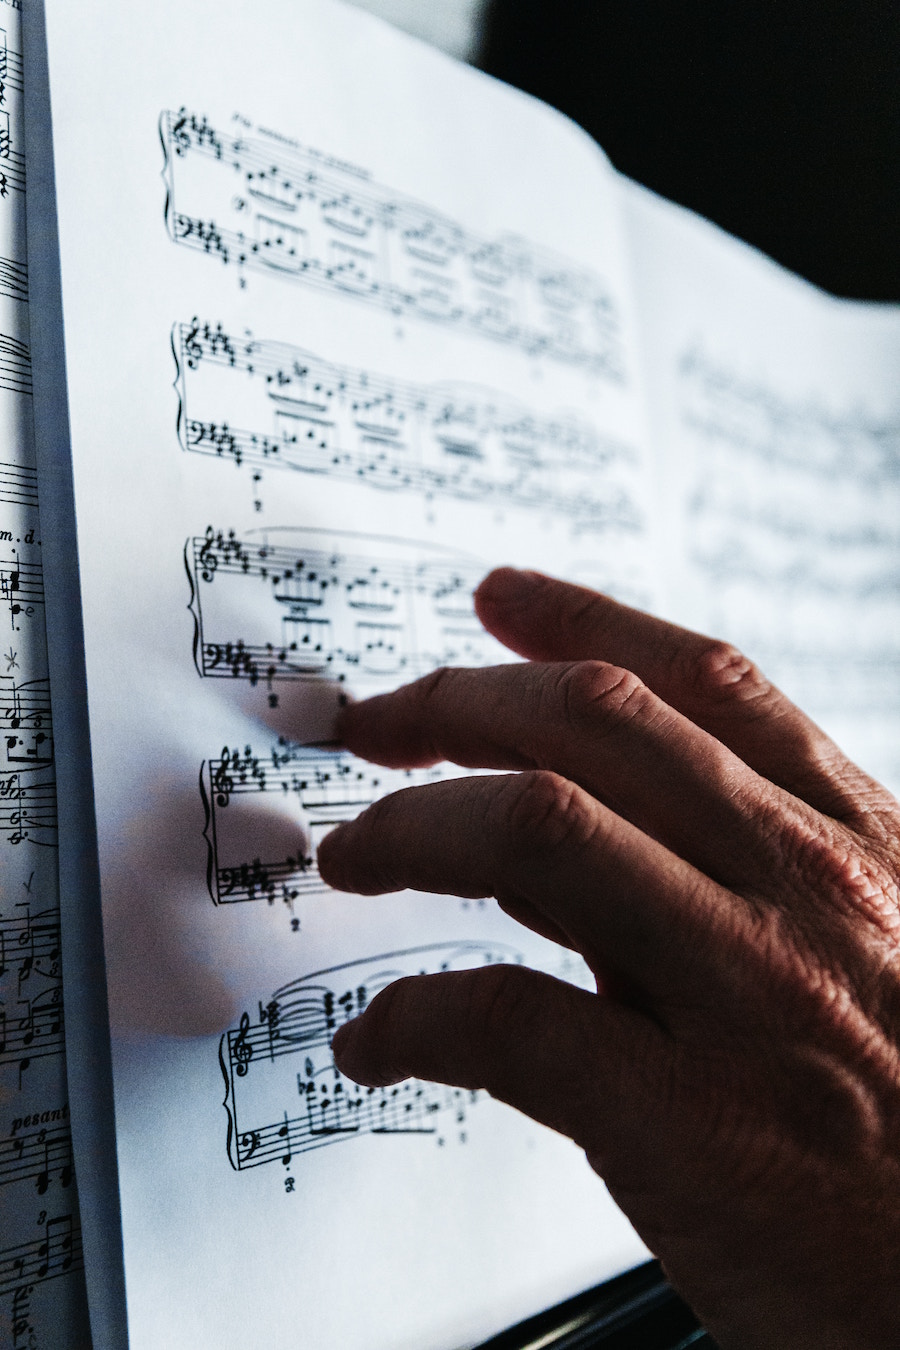 How to Teach Piano Sight Reading Successfully - Part 1